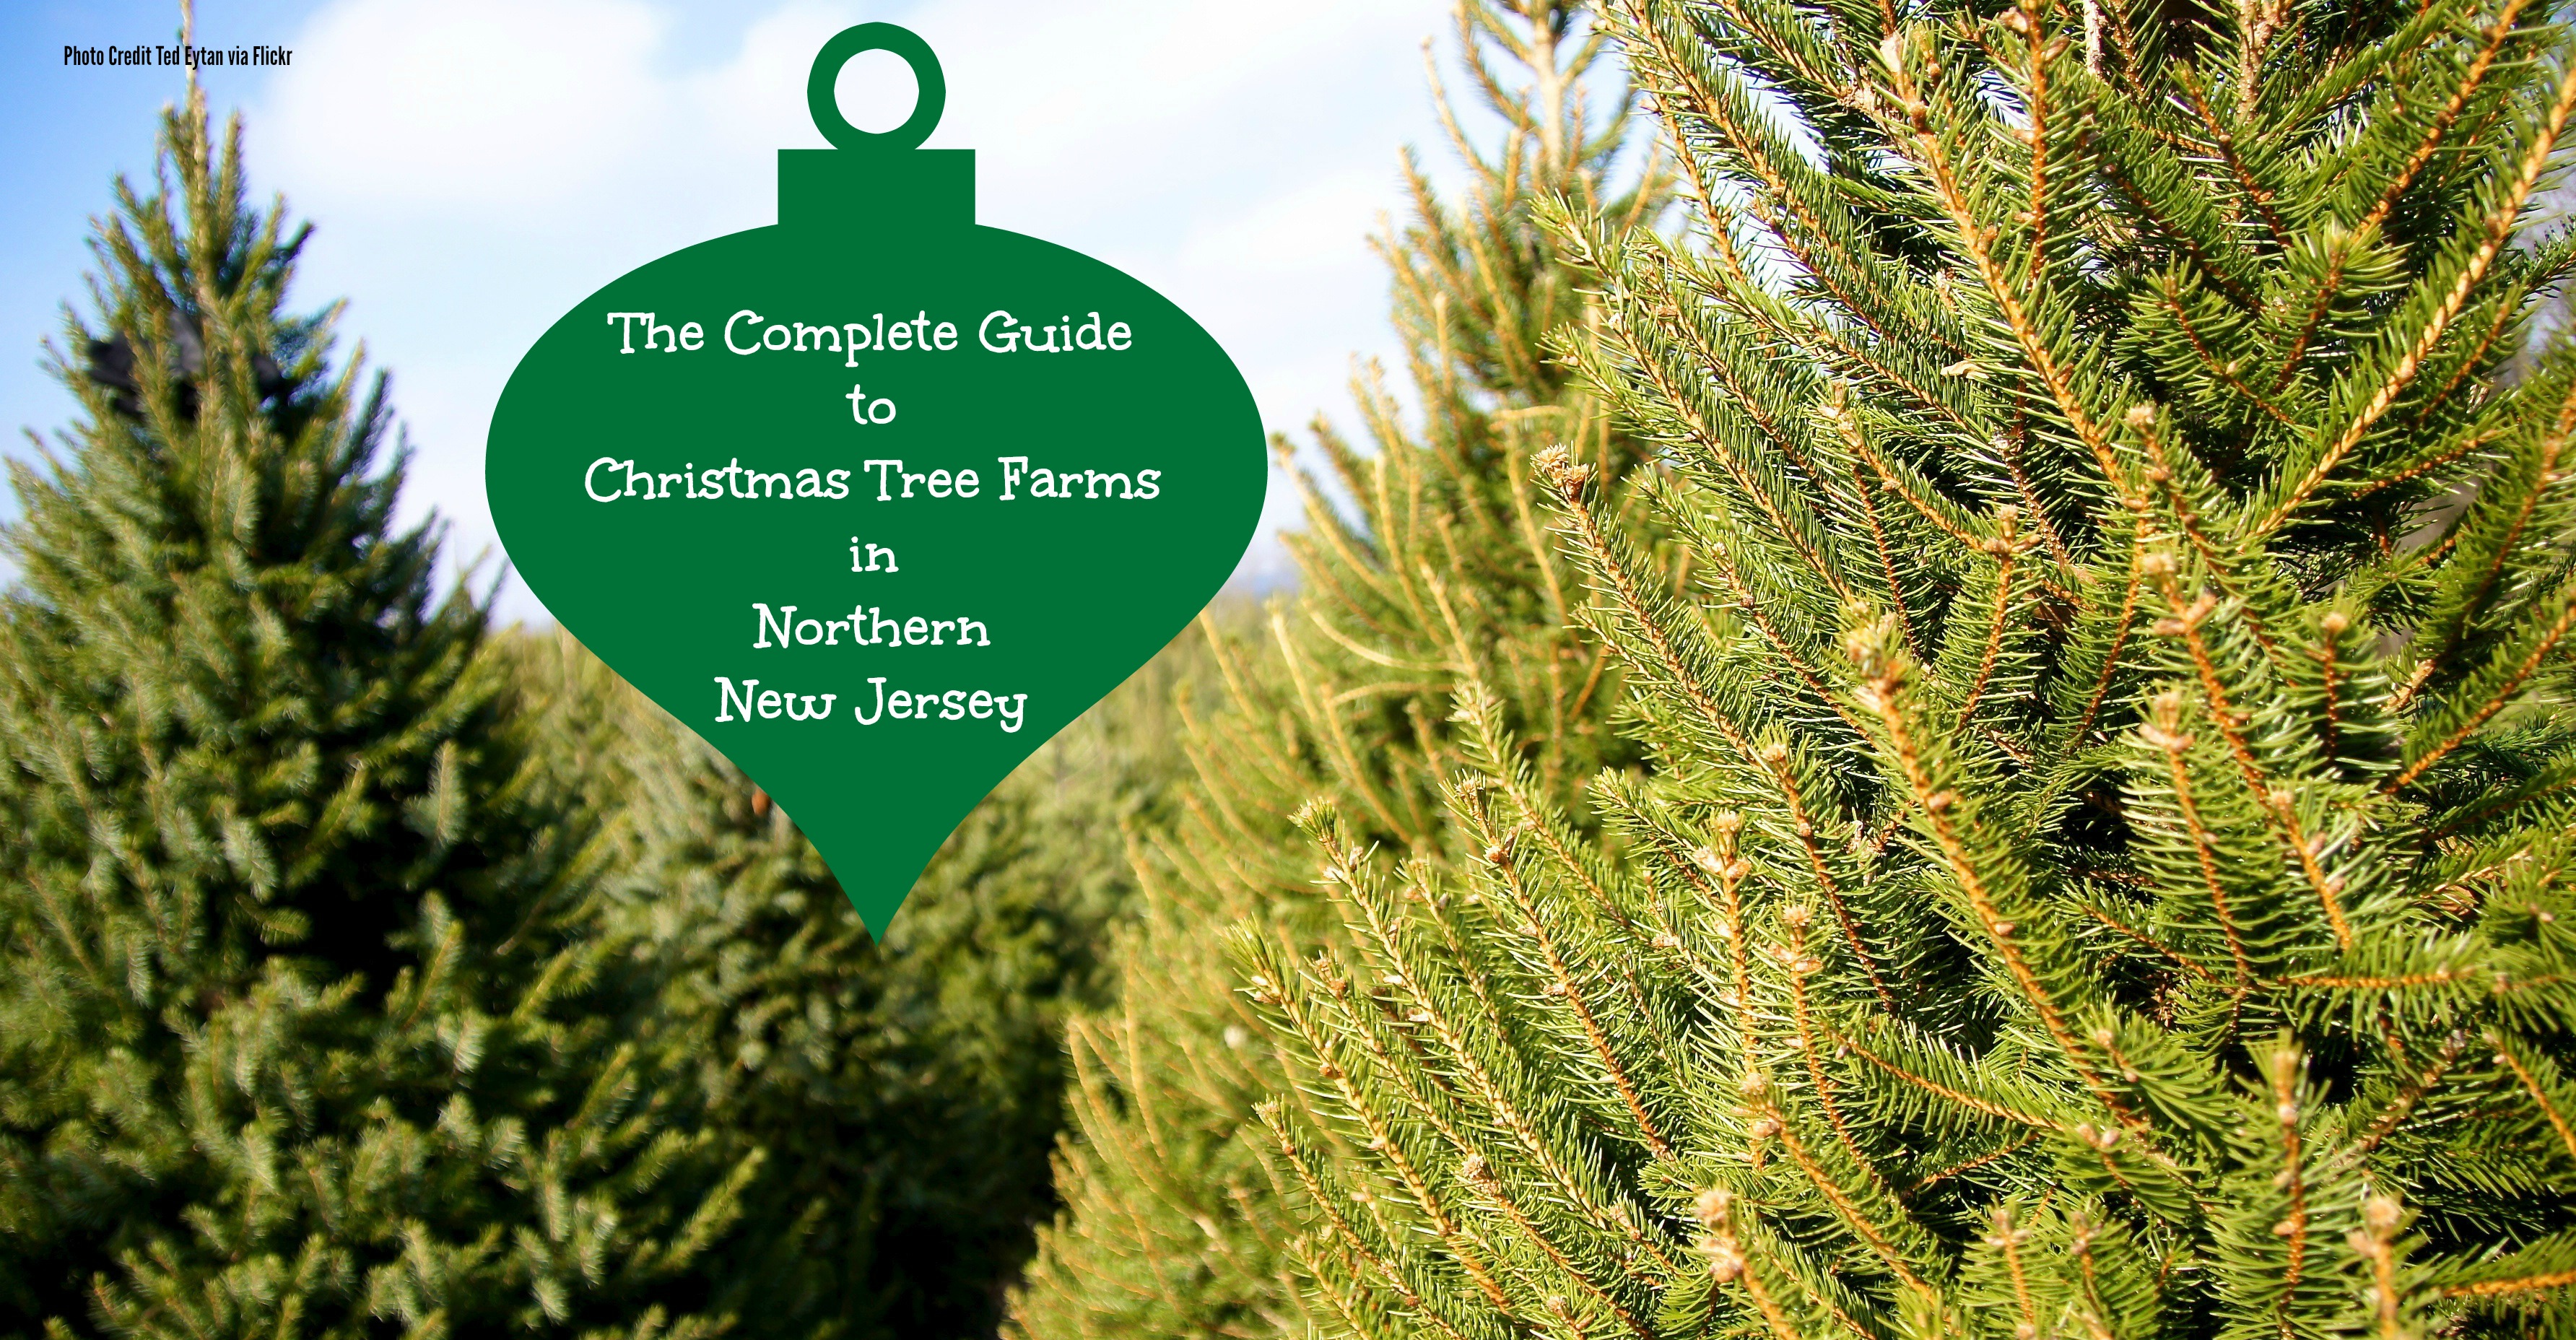 The Complete Guide To Christmas Tree Farms in North Jersey - Things ...